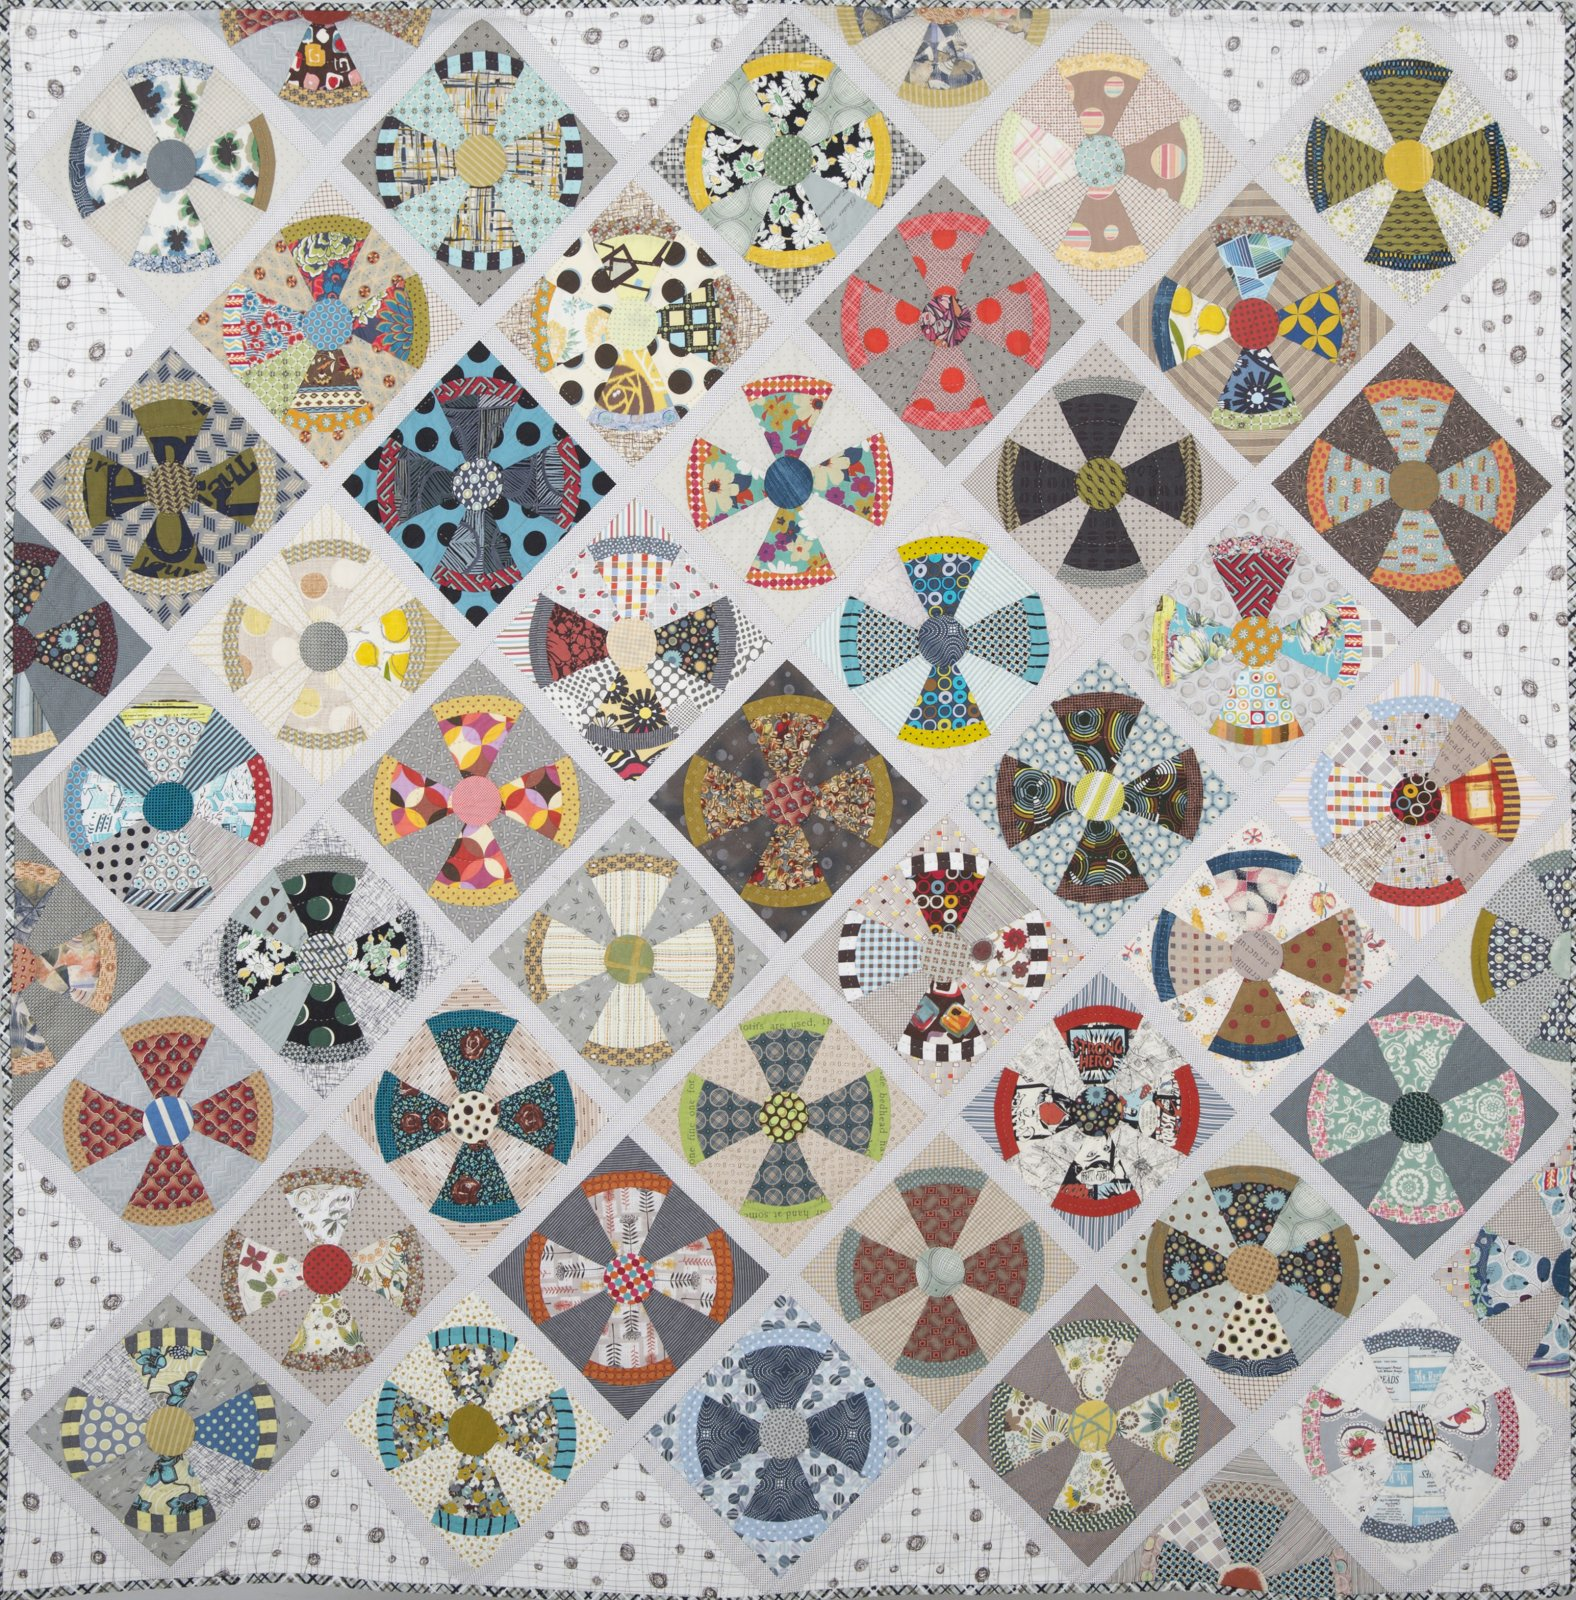 Steam Punk Pattern by Jen Kingwell Designs - 858499005095 : steampunk quilt pattern - Adamdwight.com